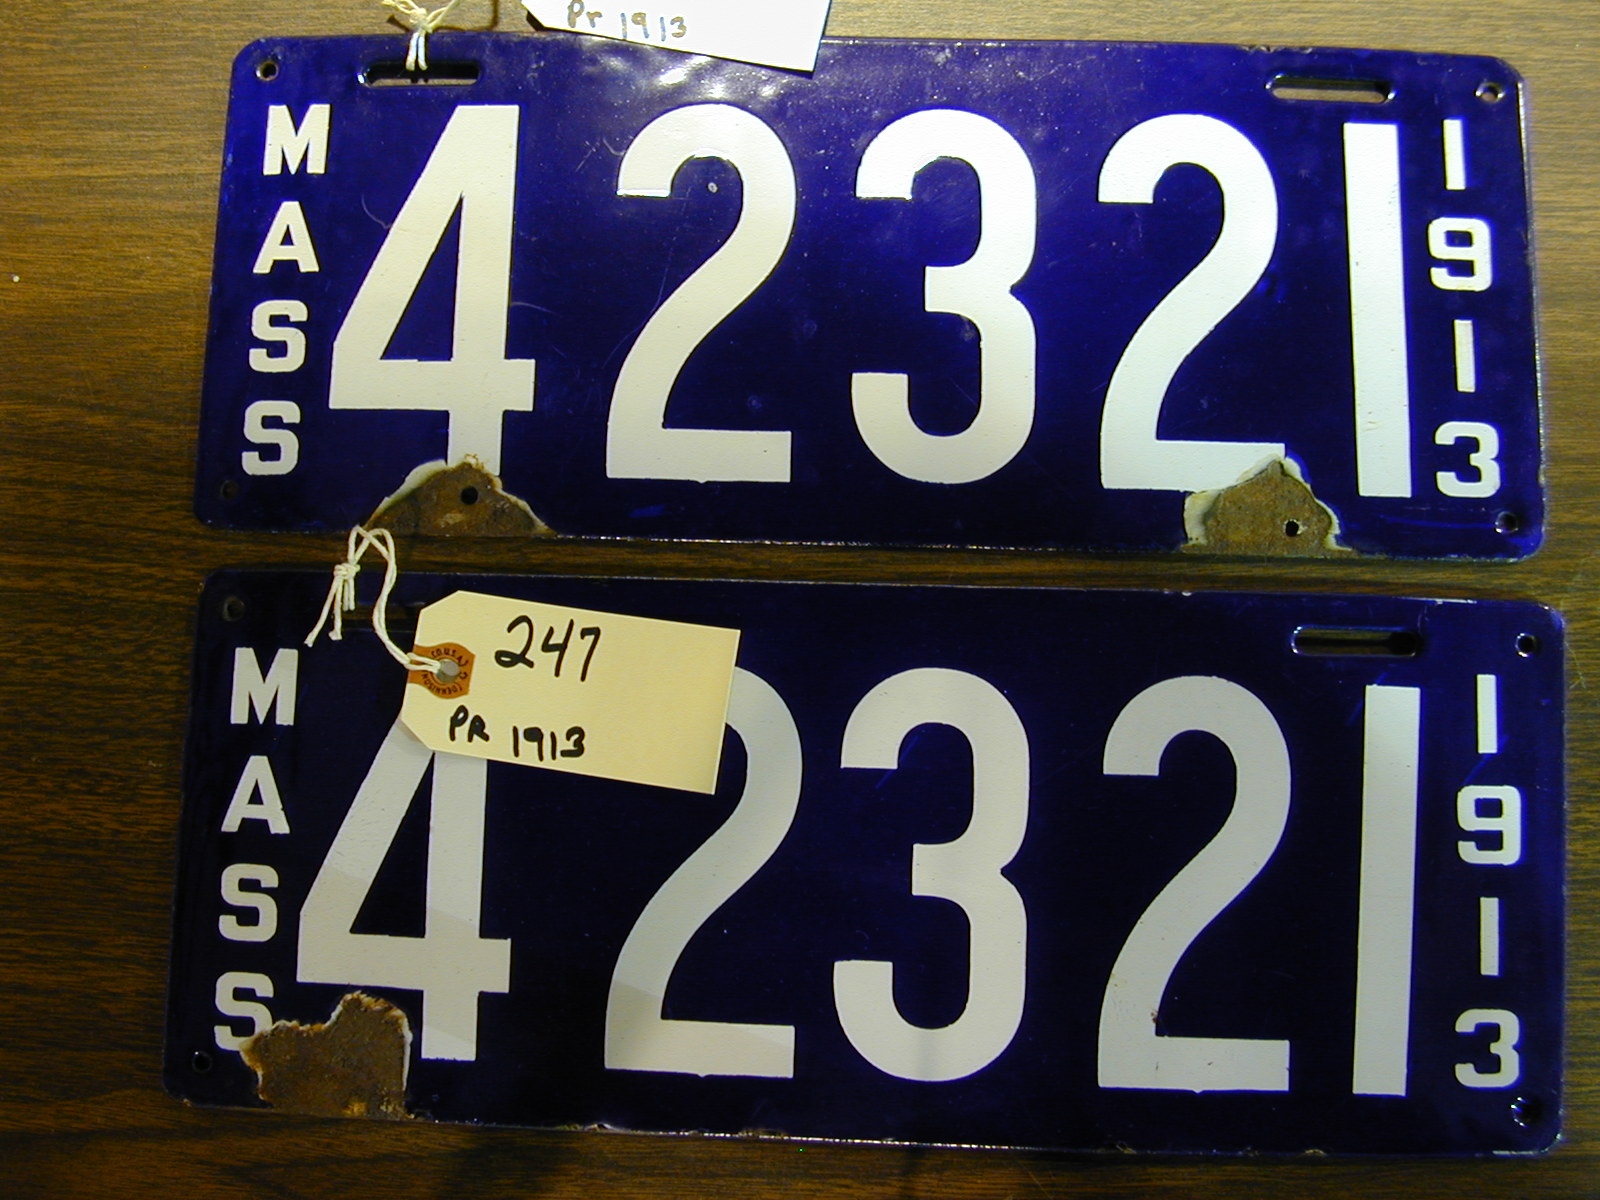 LOT #250 Pair MA 1914 license plates. LOT #251 Pair MA 1957 Hackney Carriage license plates & Hap Moore Antiques Auction April 29 2006